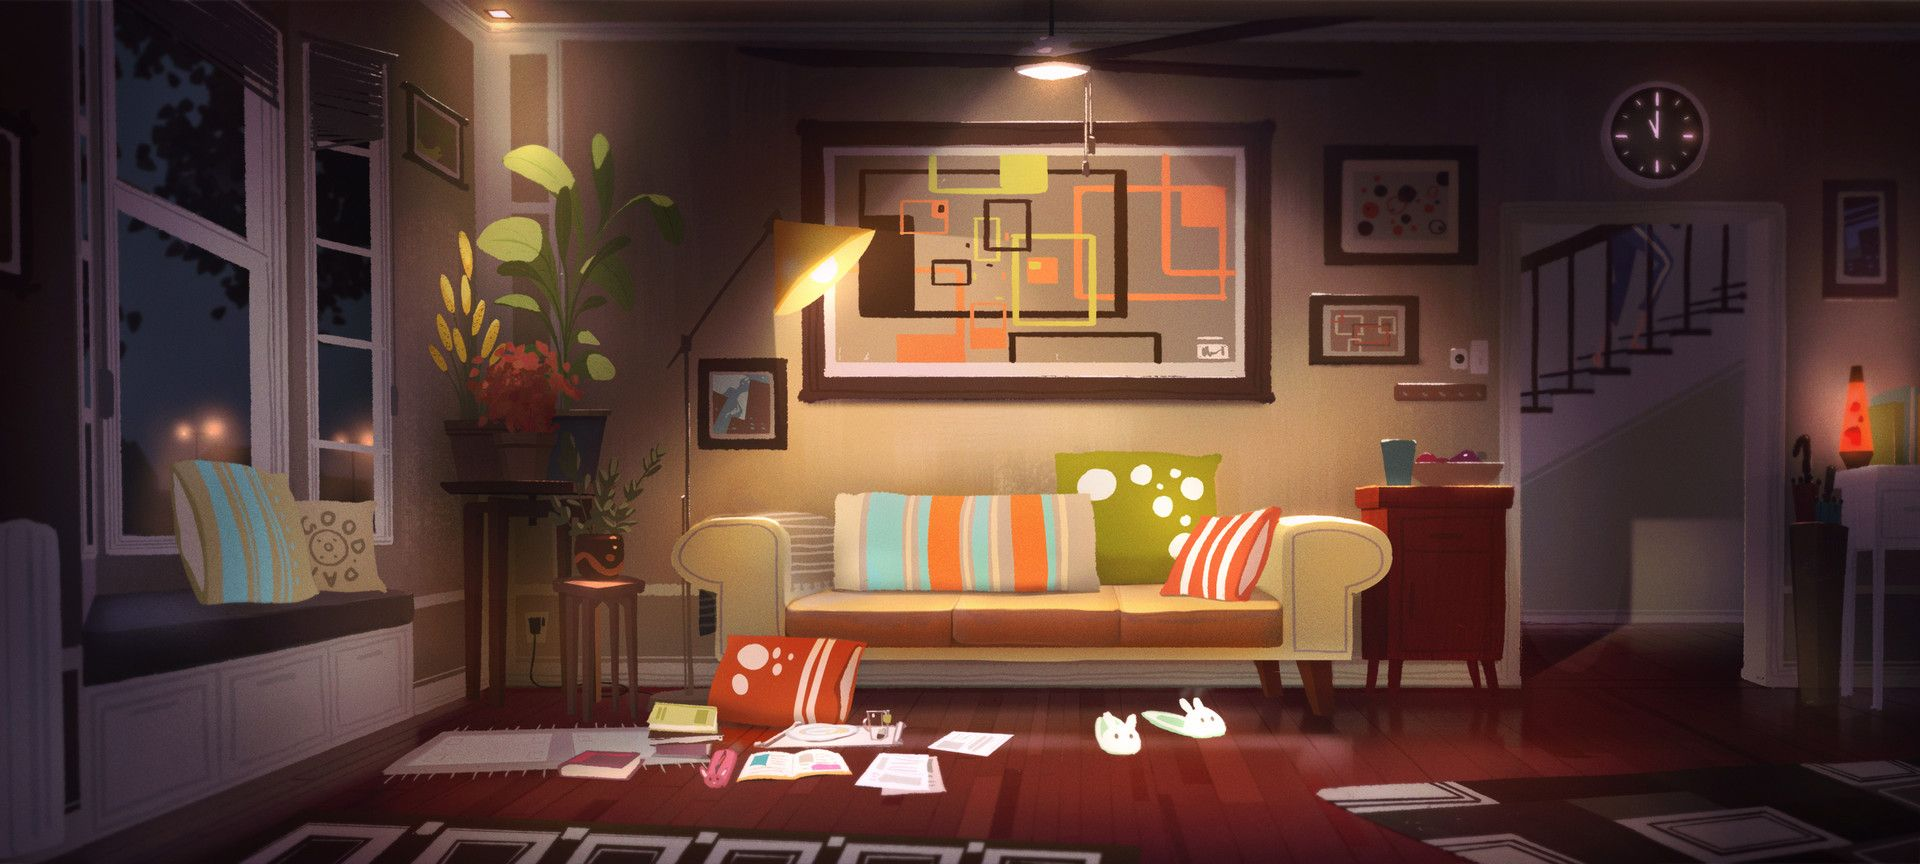 Pin On Textureing Living room background animated